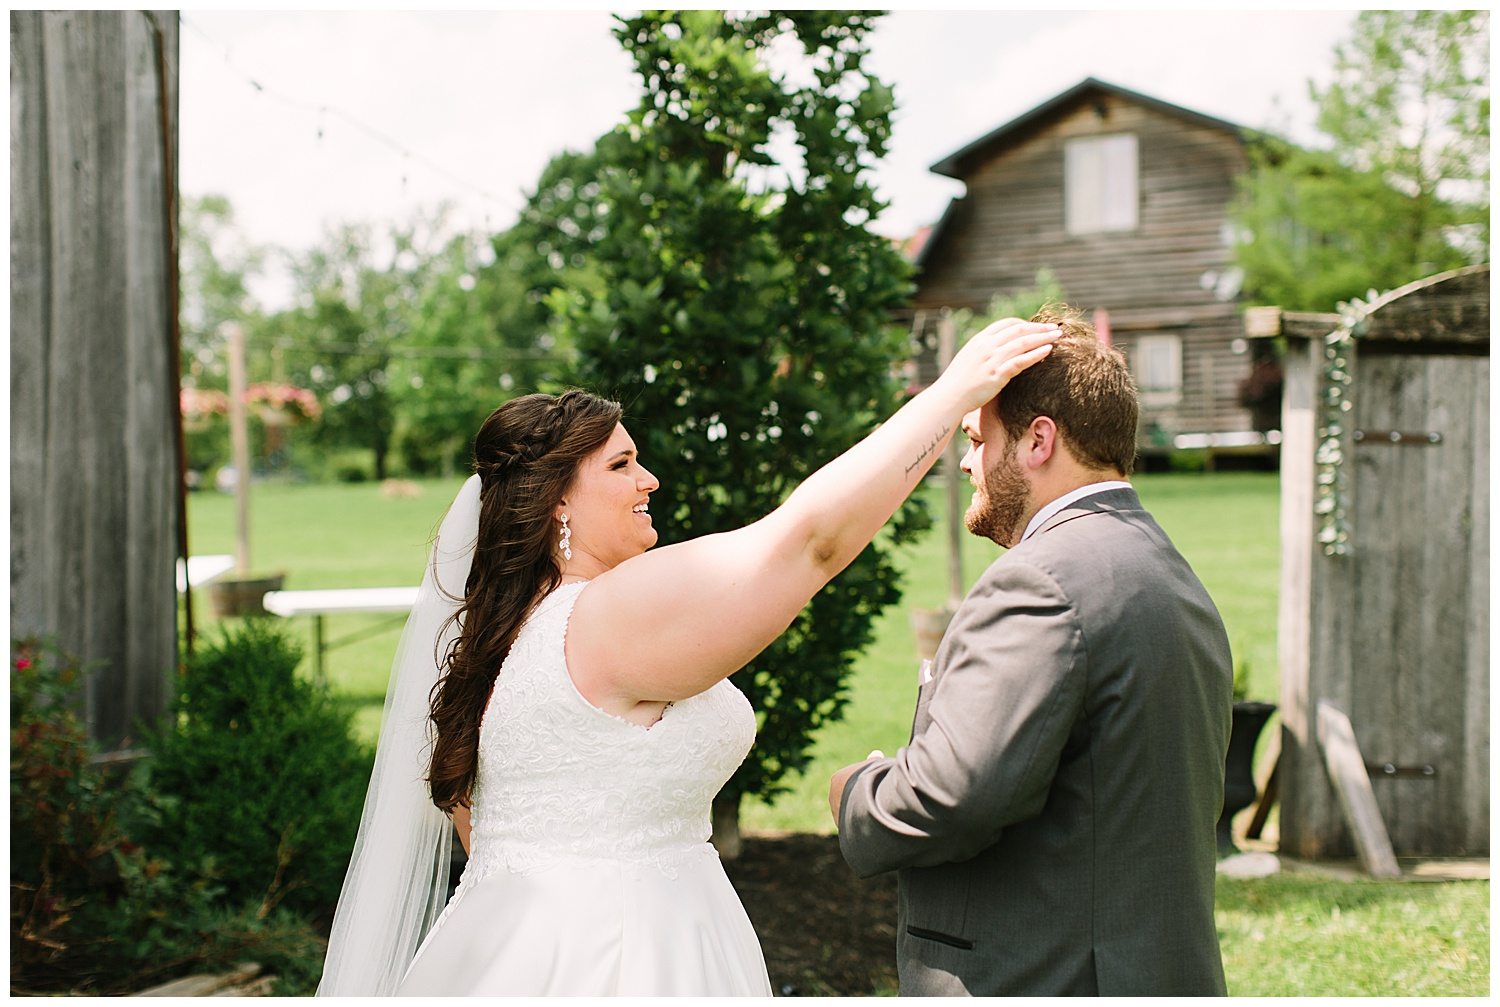 trent.and.kendra.photography.eden.springs.farmstead.shelbyville.wedding-31.jpg